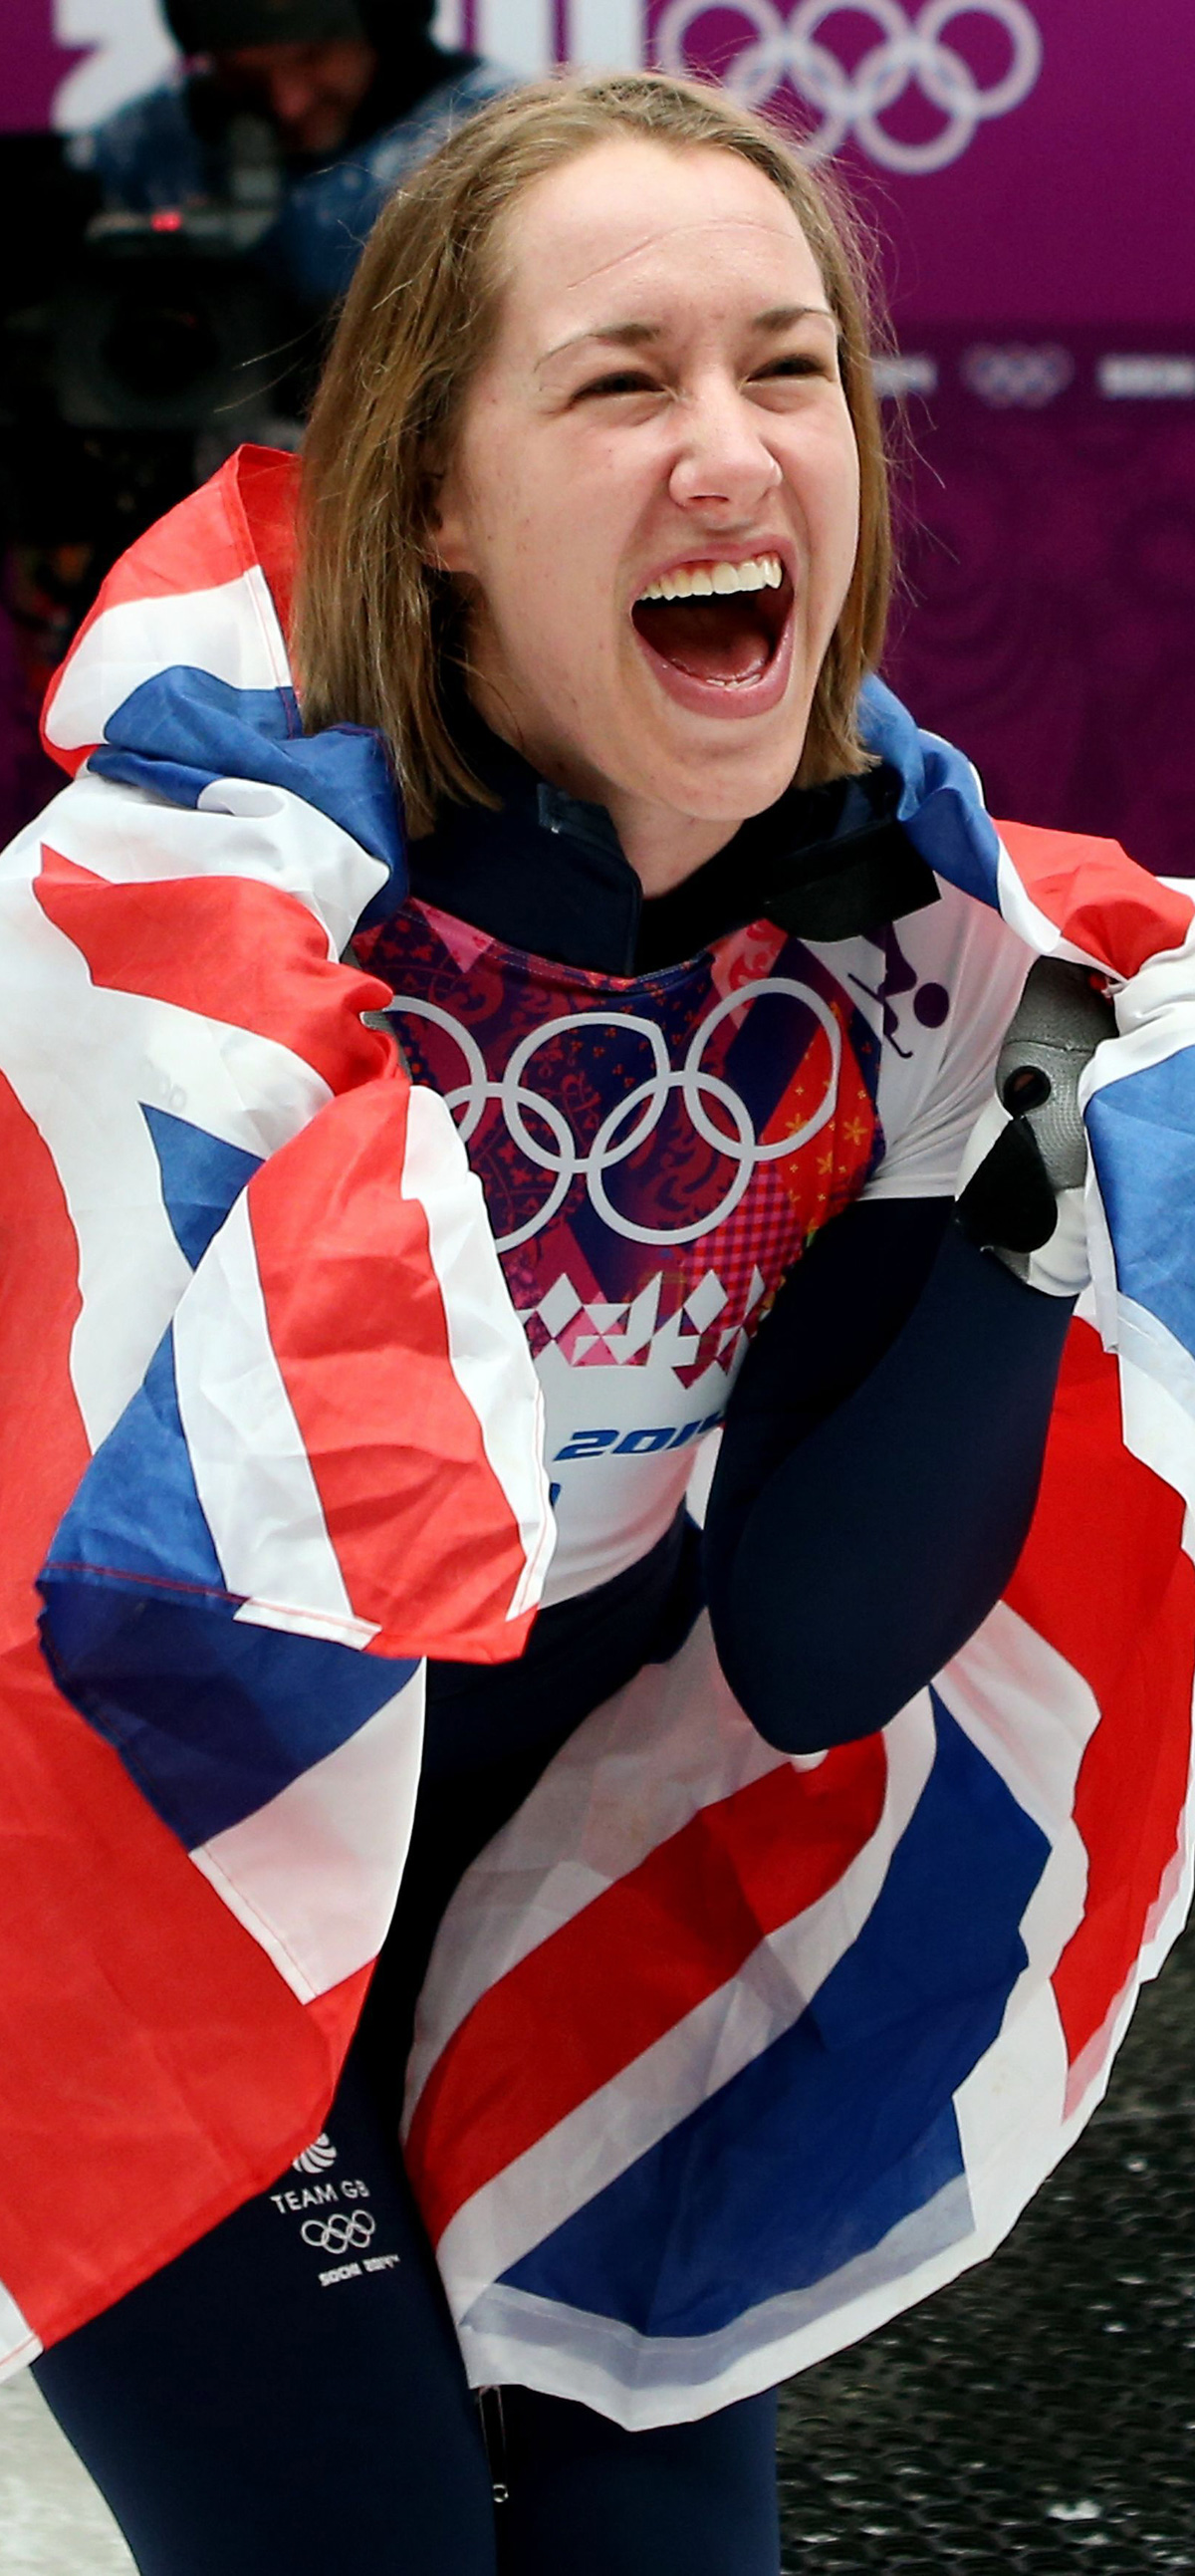 Lizzy Yarnold won Team GB's first gold medal at the Winter Olympics in Sochi